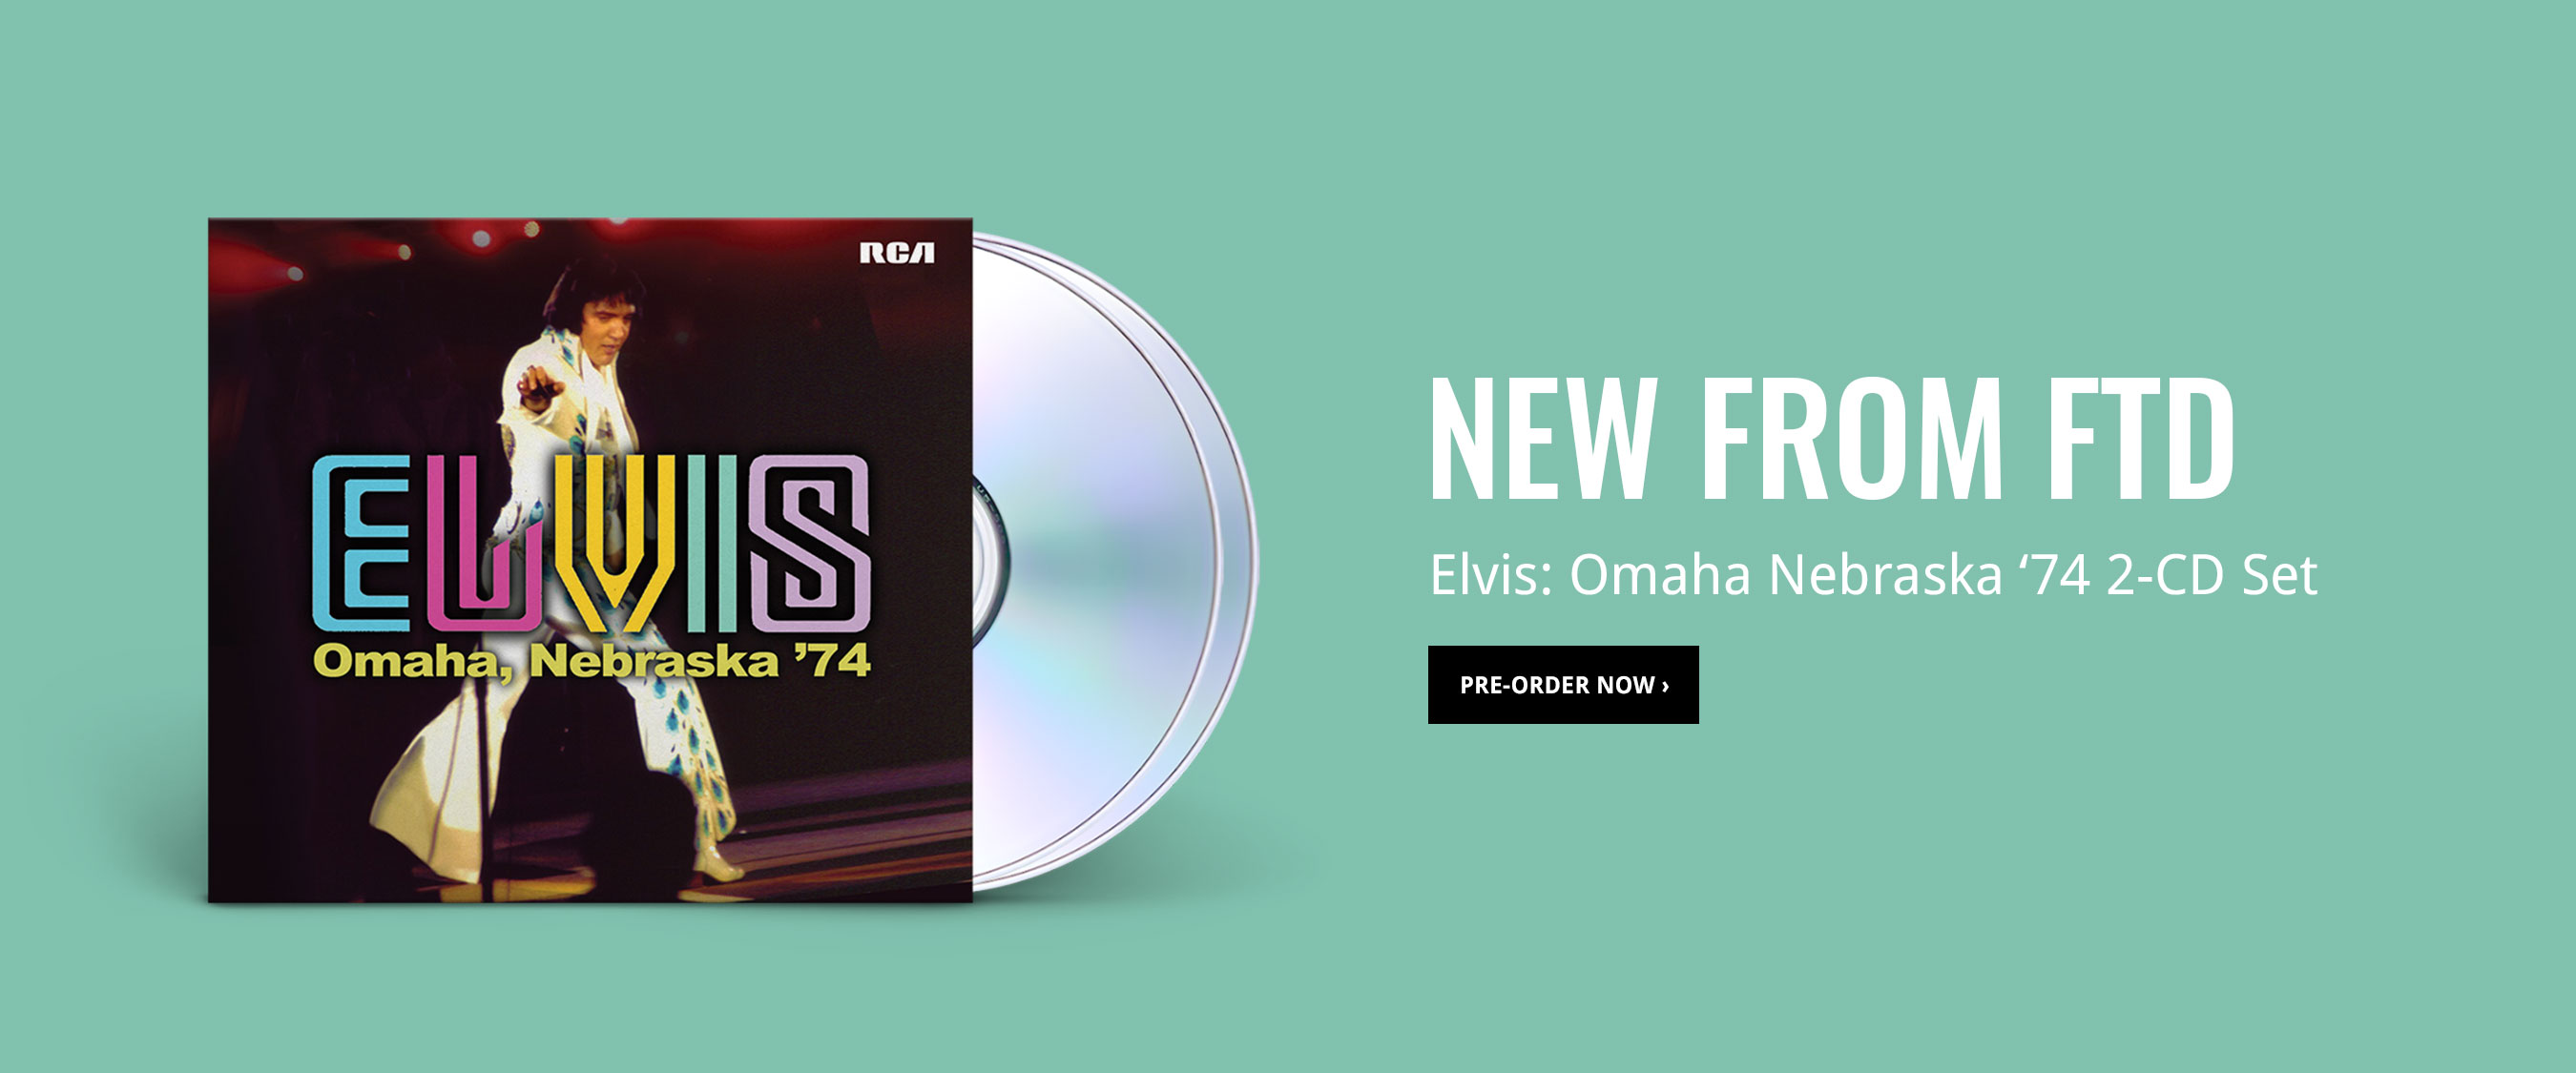 New from FTD: Omaha '74 2-CD Set!